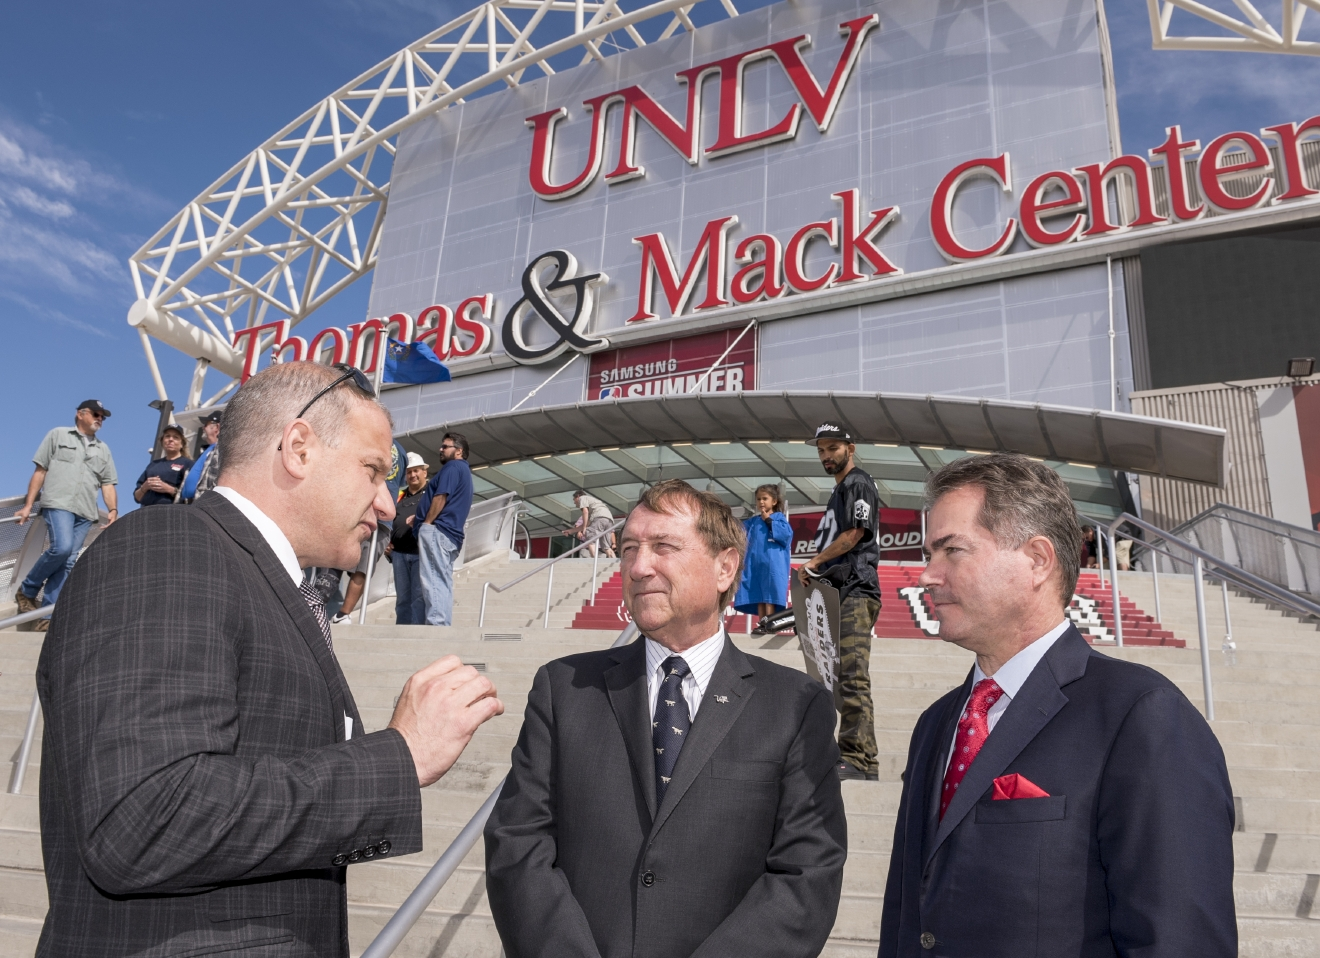 Oakland Raiders President Marc Badain, from left, chats with LVCVA President and CEO Rossi Ralenkotter and UNLV President Len Jessup following a Win Win Nevada Coalition announcement of support for immediate legislative approval of the Las Vegas Convention Center expansion and a new football stadium, both unanimously approved by the Governor's Southern Nevada Tourism Infrastructure Committee, at the Thomas & Mack arena at UNLV on Monday, Oct. 3. 2016. (Mark Damon/Las Vegas News Bureau)